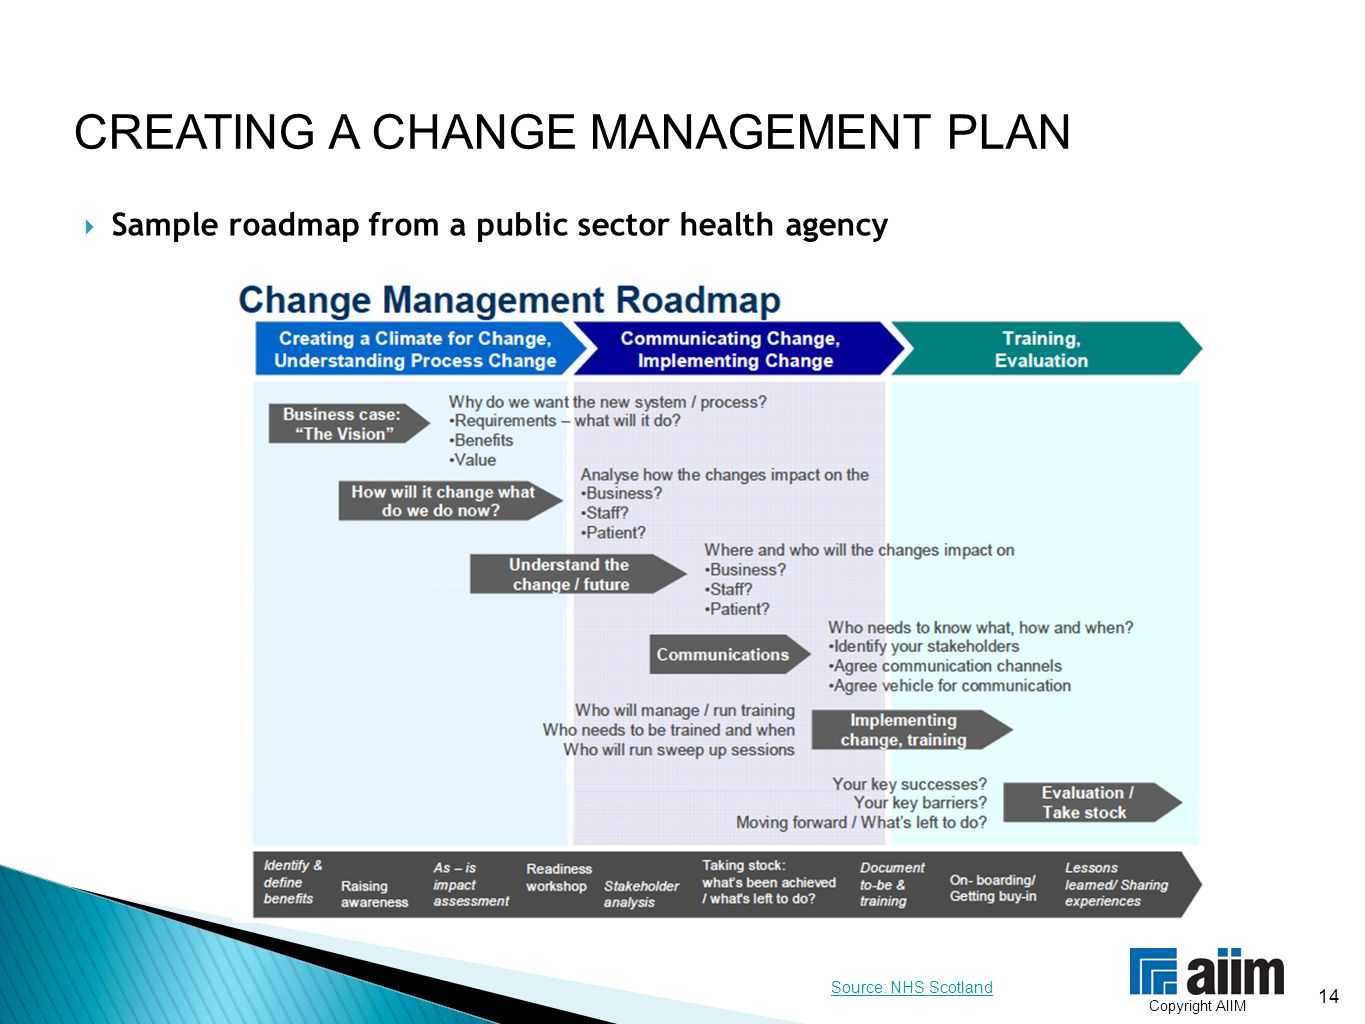 8 change management plan with examples pdf change management roadmap plan example maxwellsz